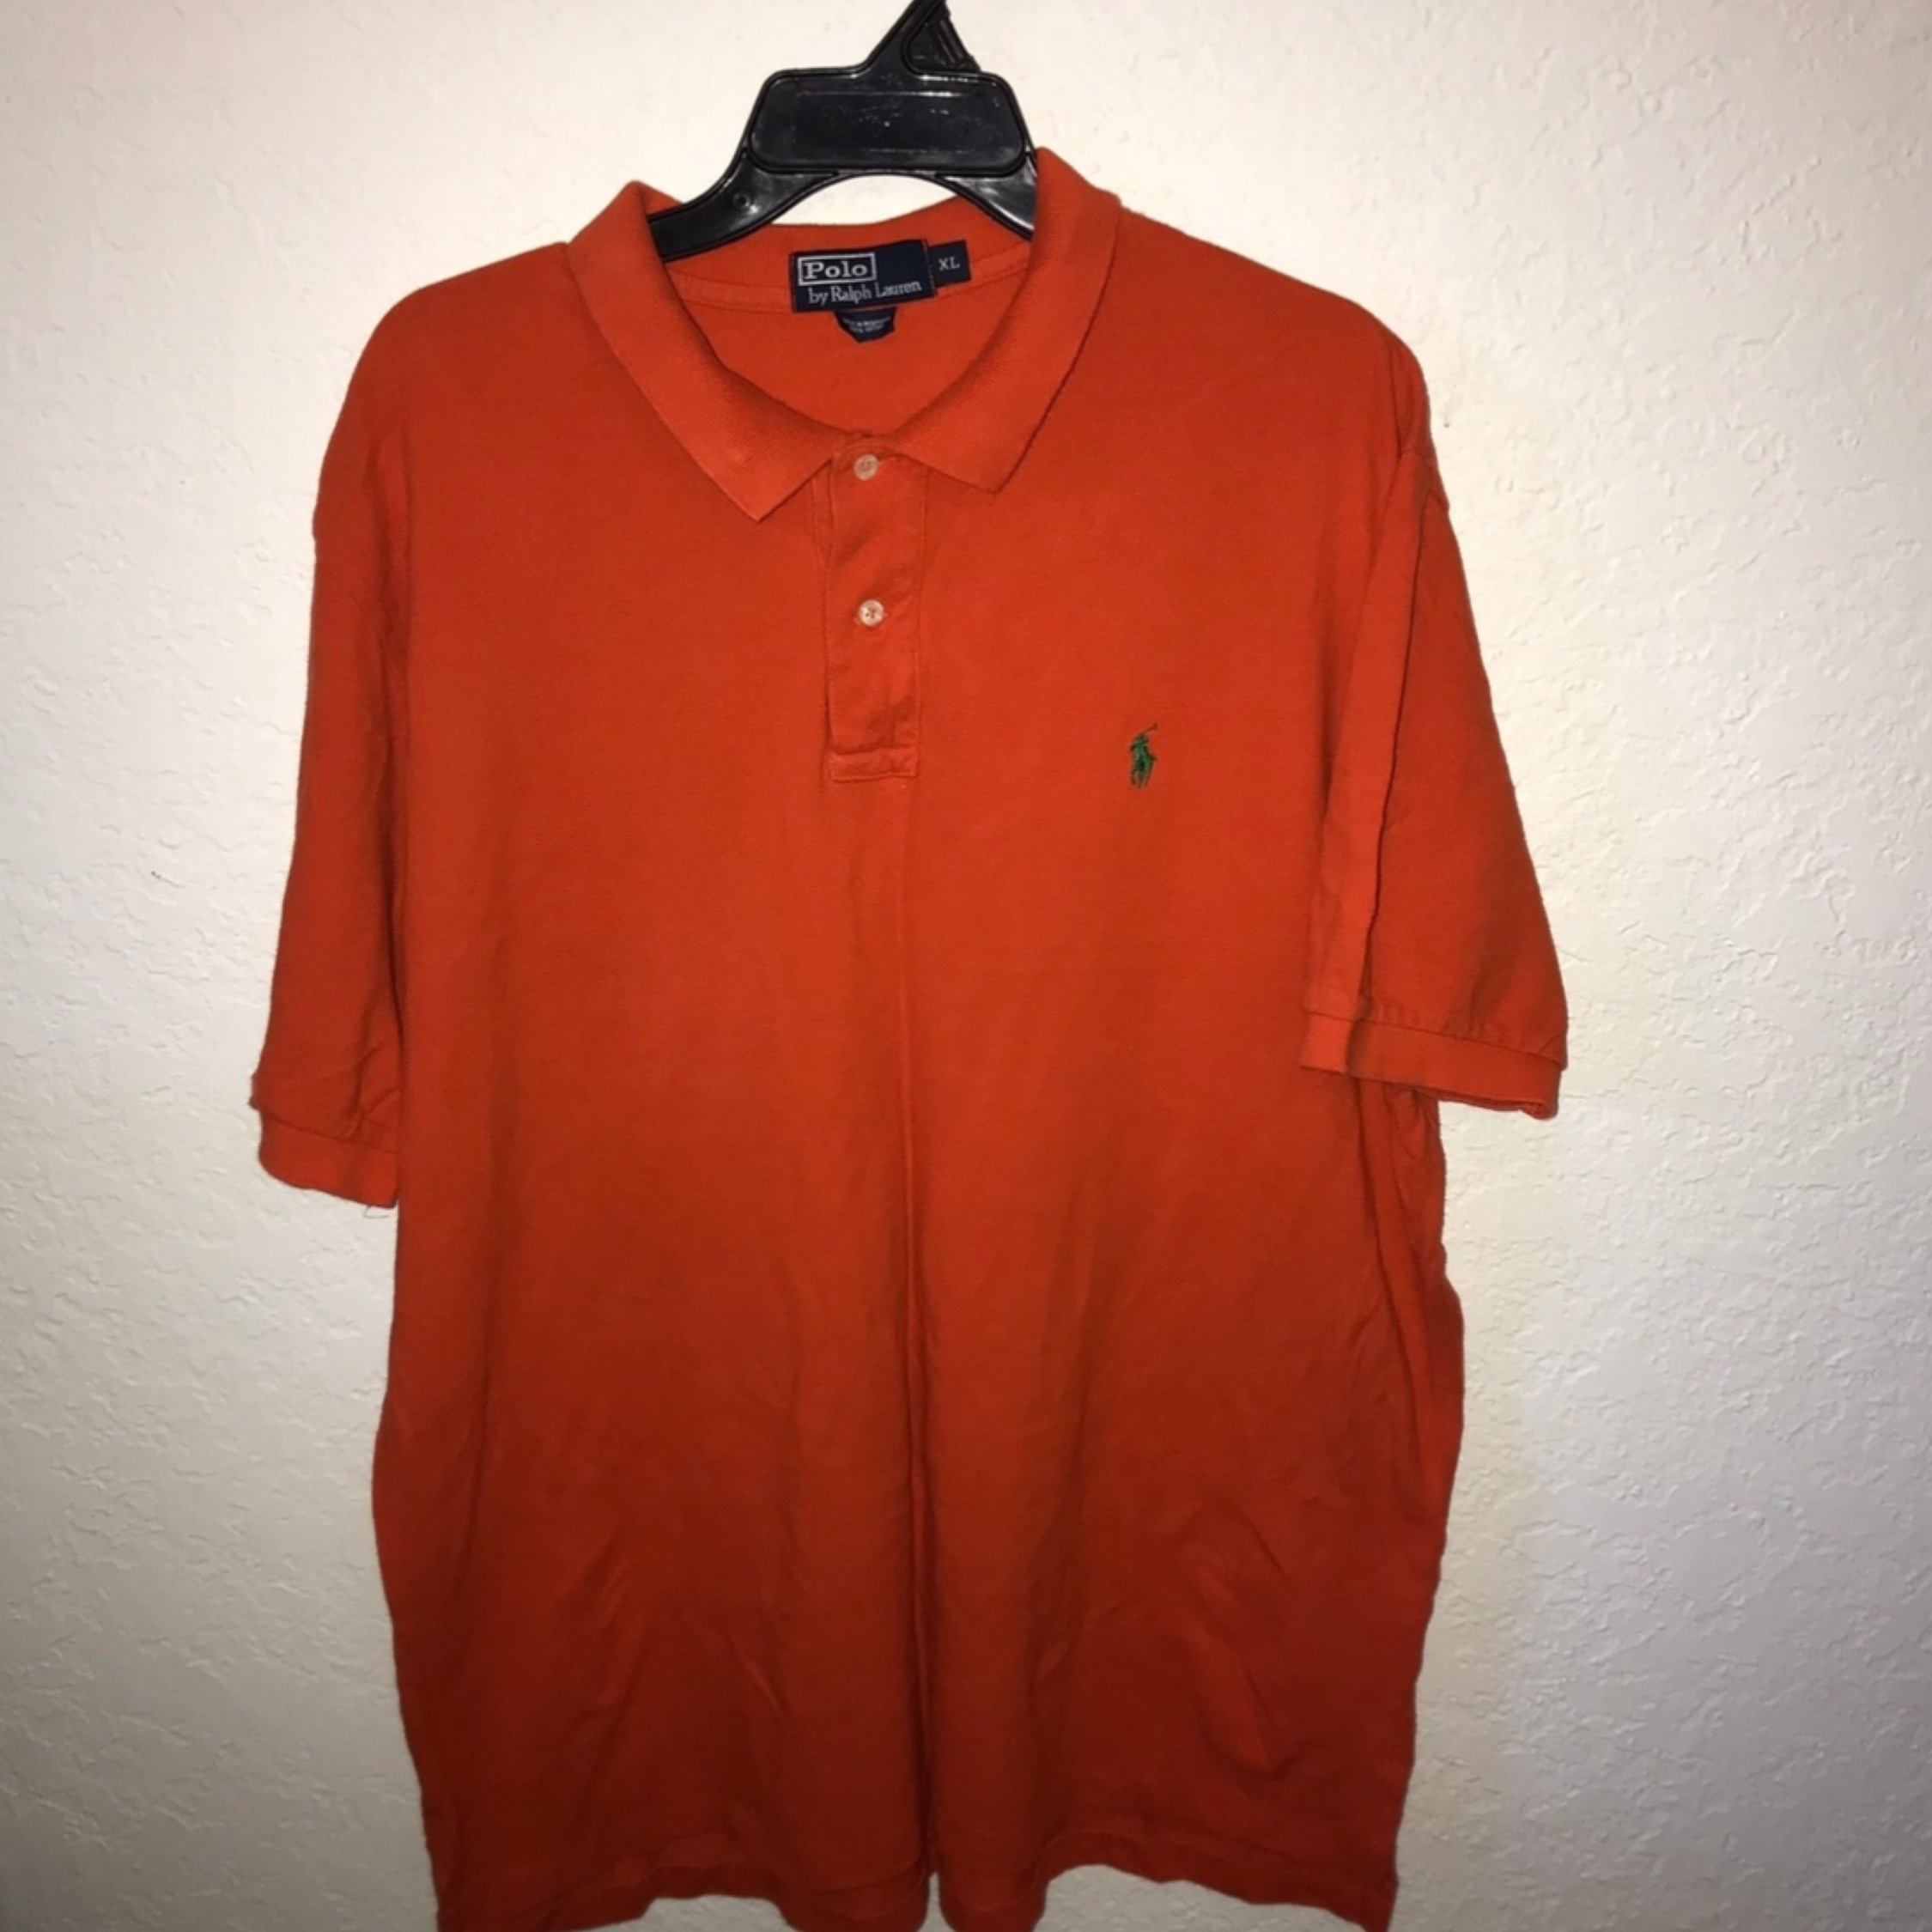 Lauren Polo Orange Shirt Vintage Ralph Xl shQrdtCx